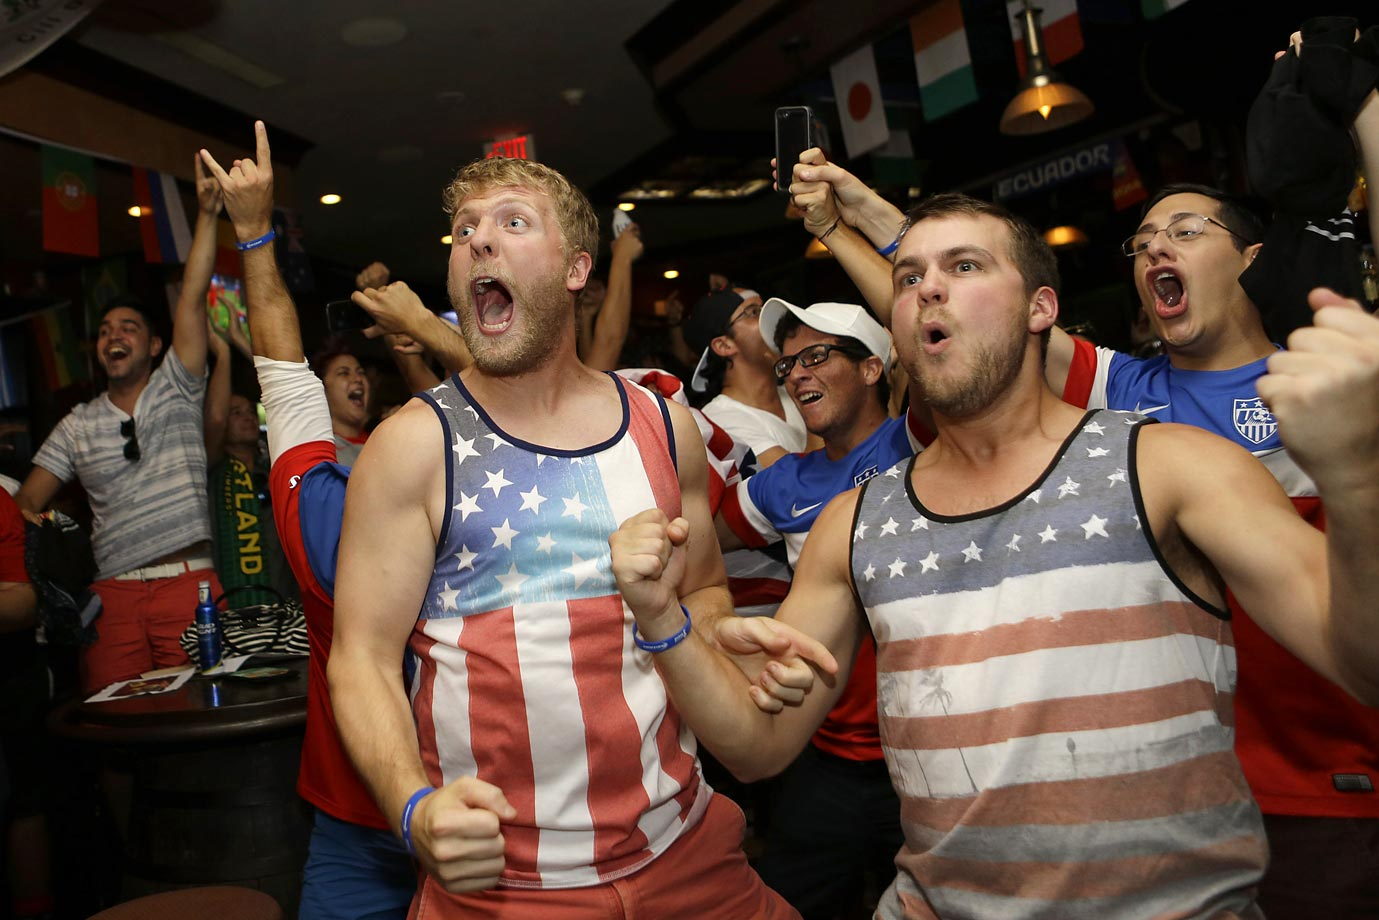 USA fans watching in Miami, Fla.